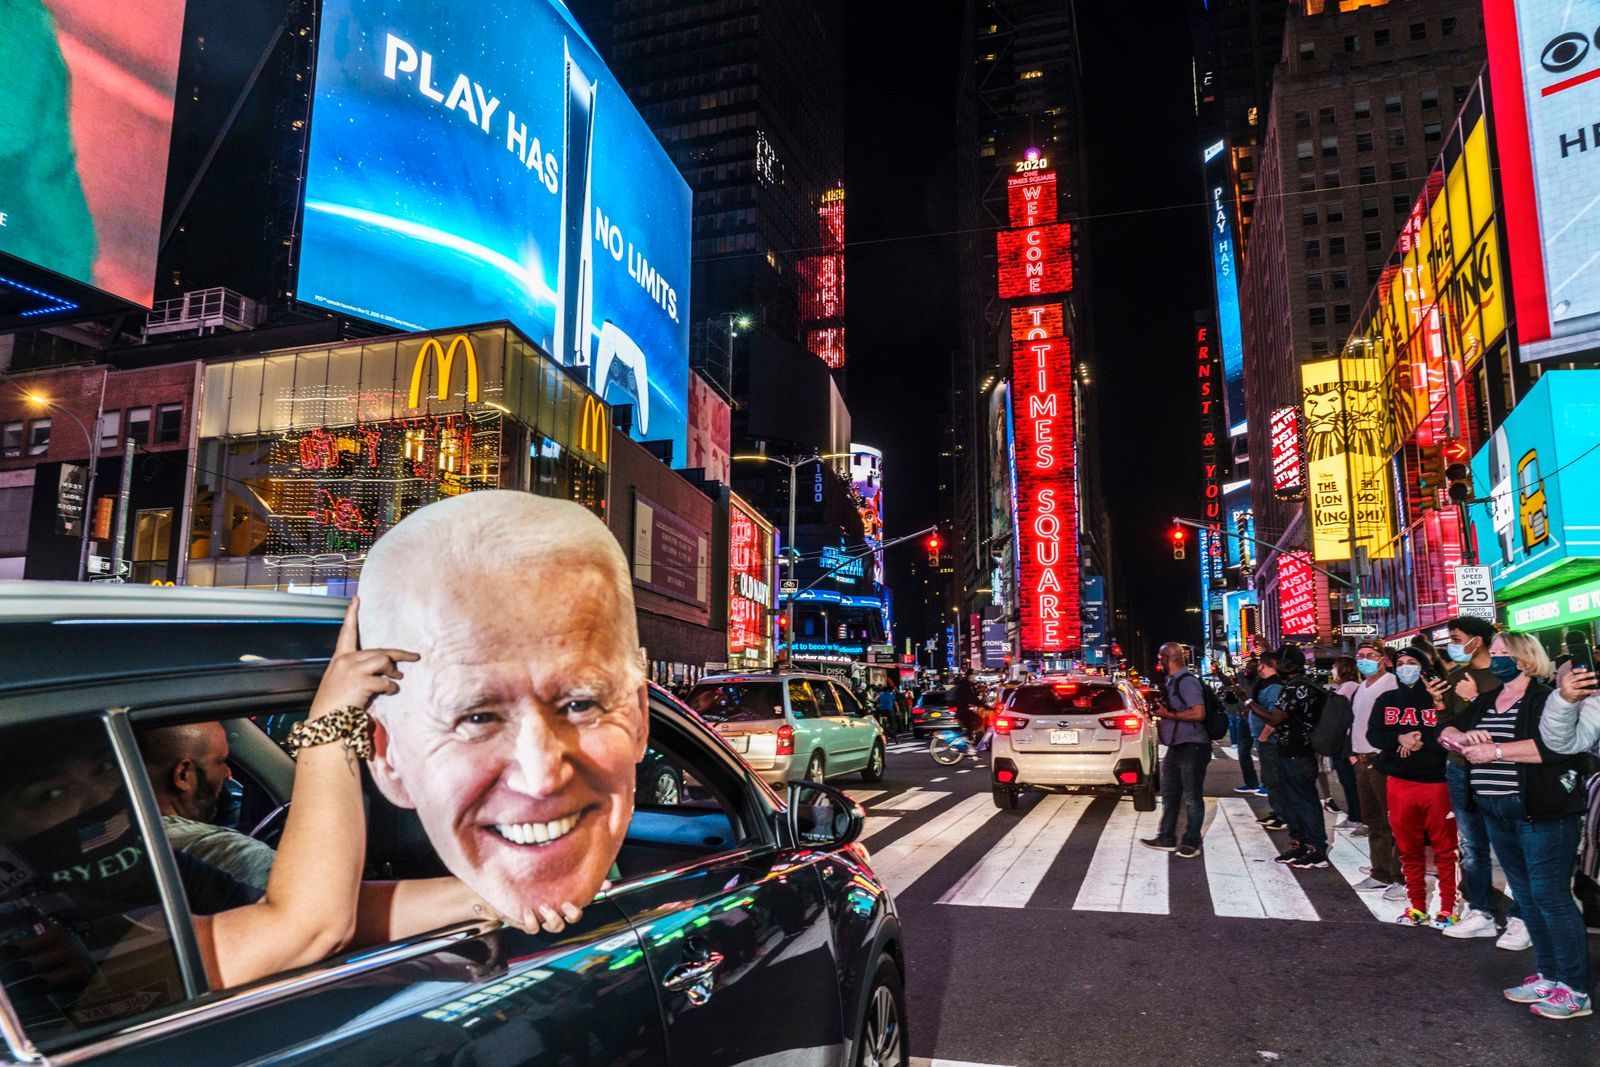 Celebration in Times Square following the announcement that Joe Biden won the 2020 Presidential Election, in Times Square, NY, on Nov. 7, 2020.